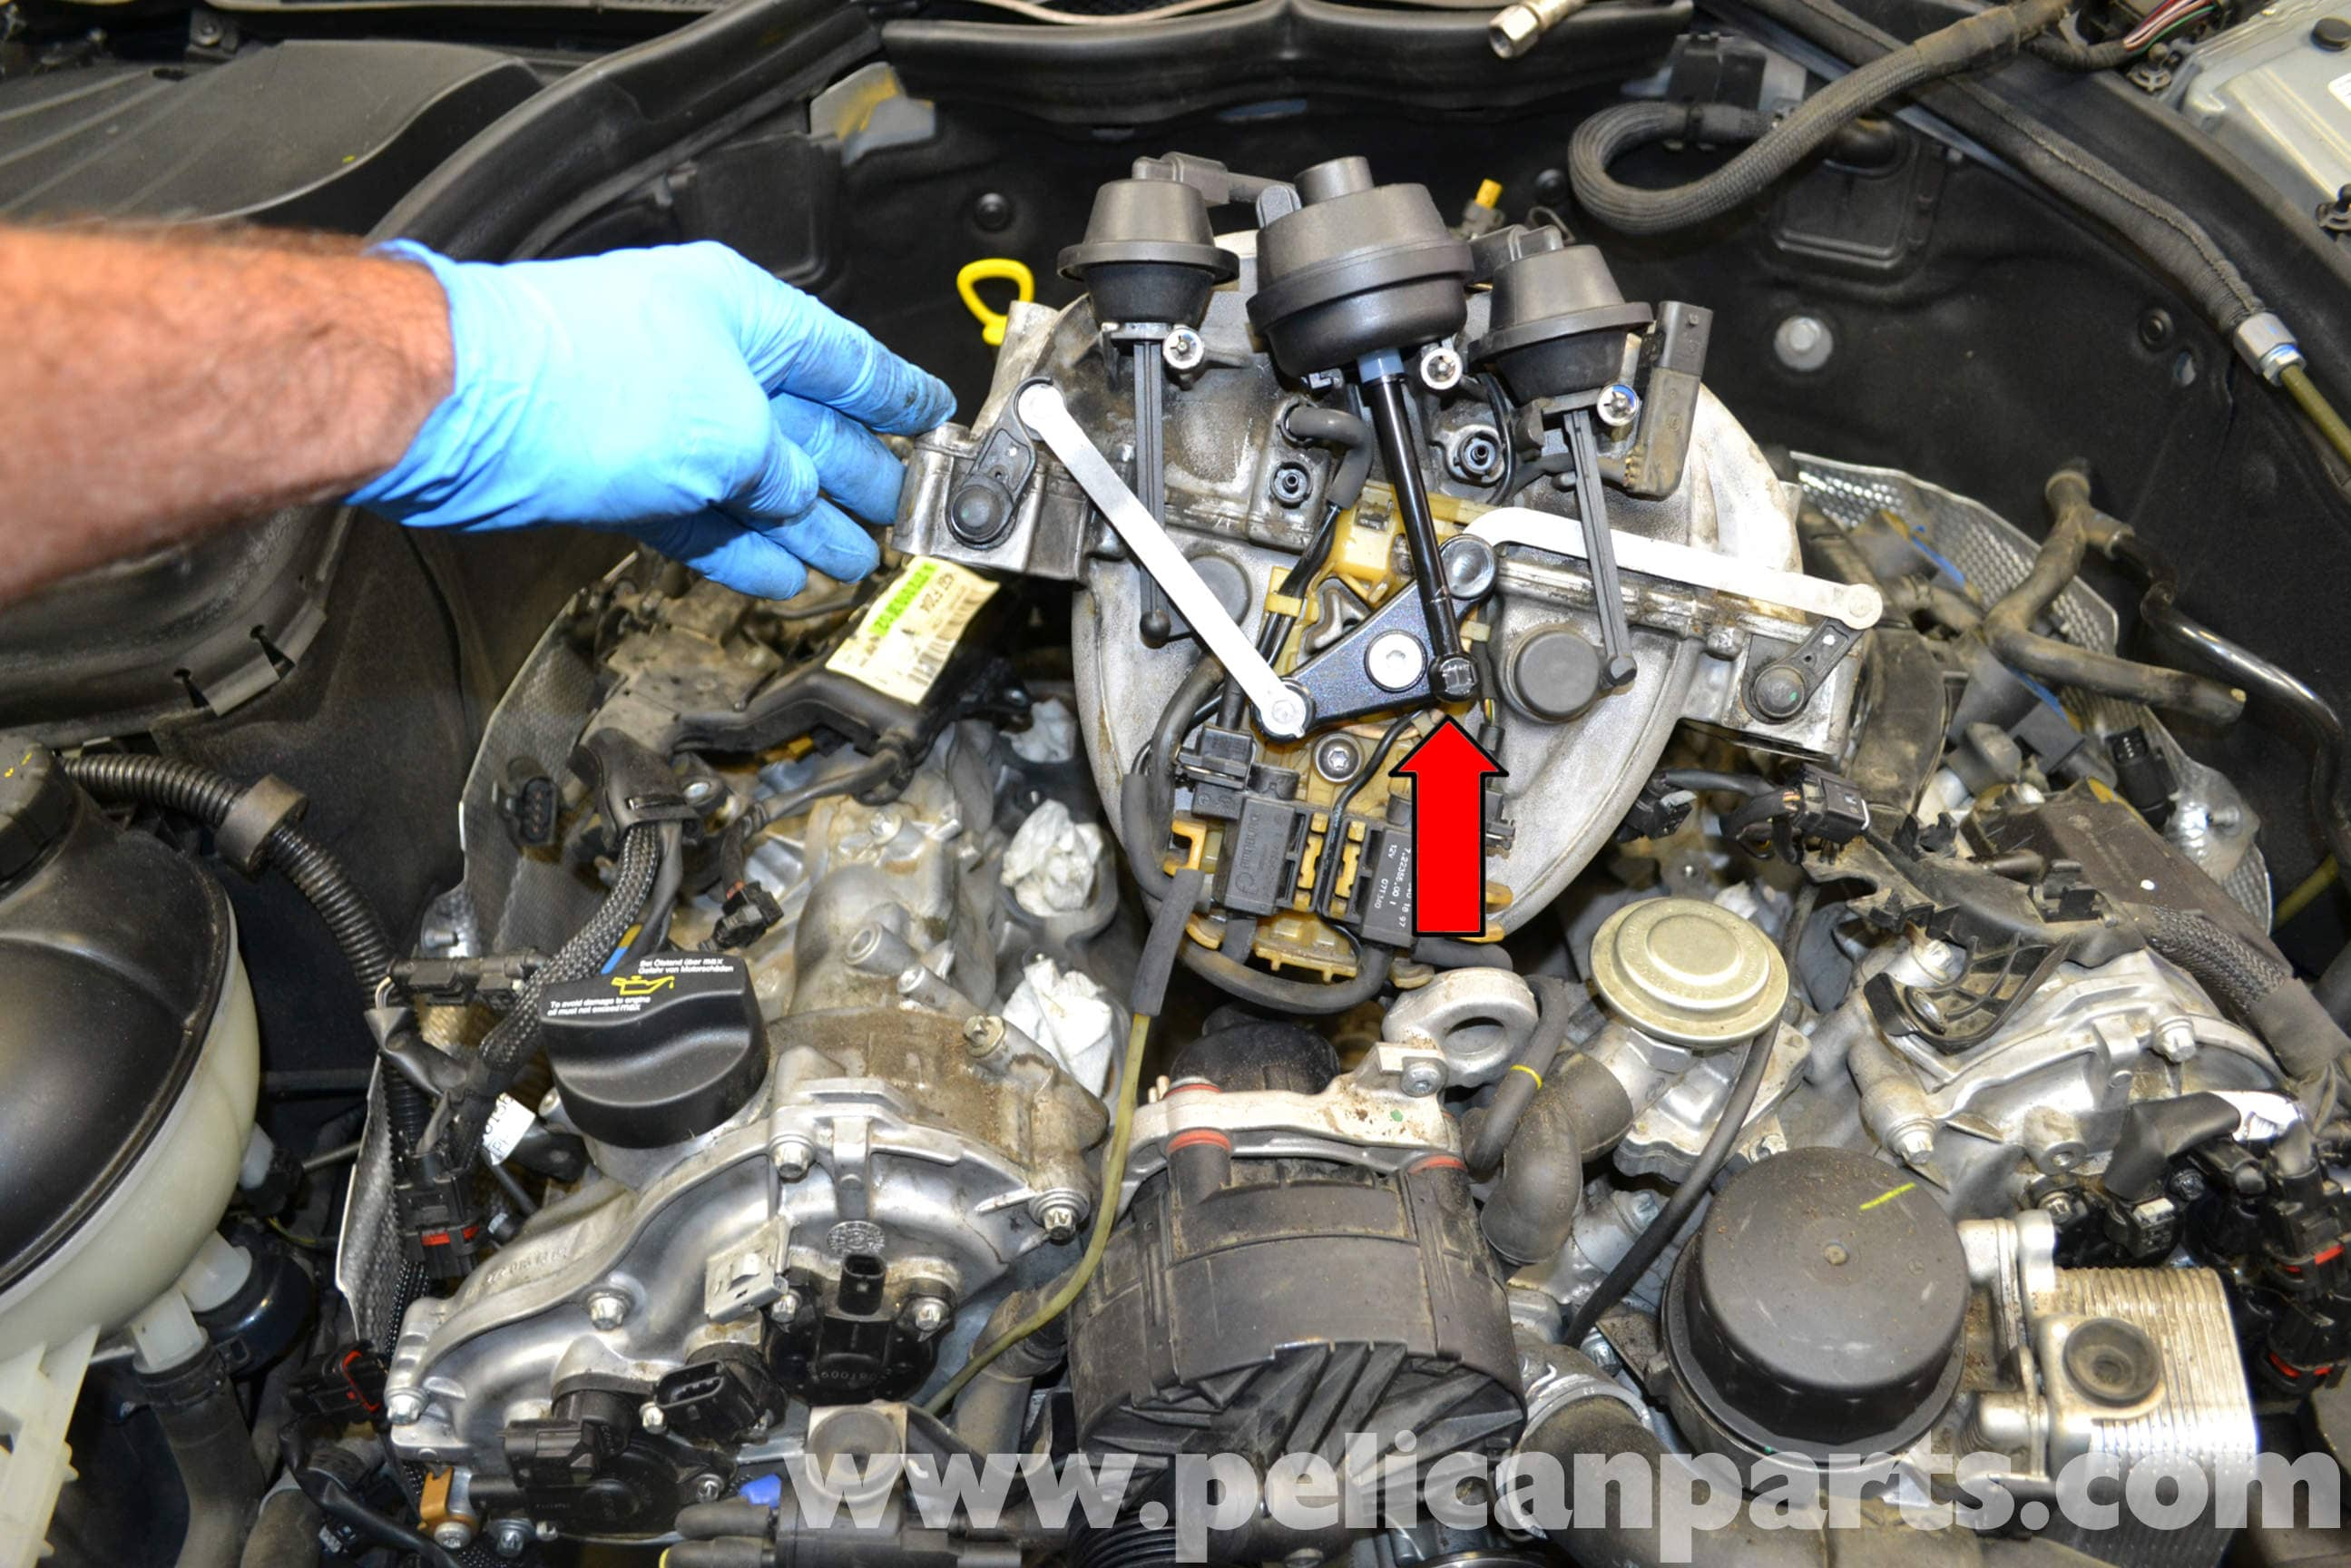 Mercedes Benz W204 Tumble Flap Actuator Repair 2008 2014 C250 Cls 550 Wide Kit Large Image Extra